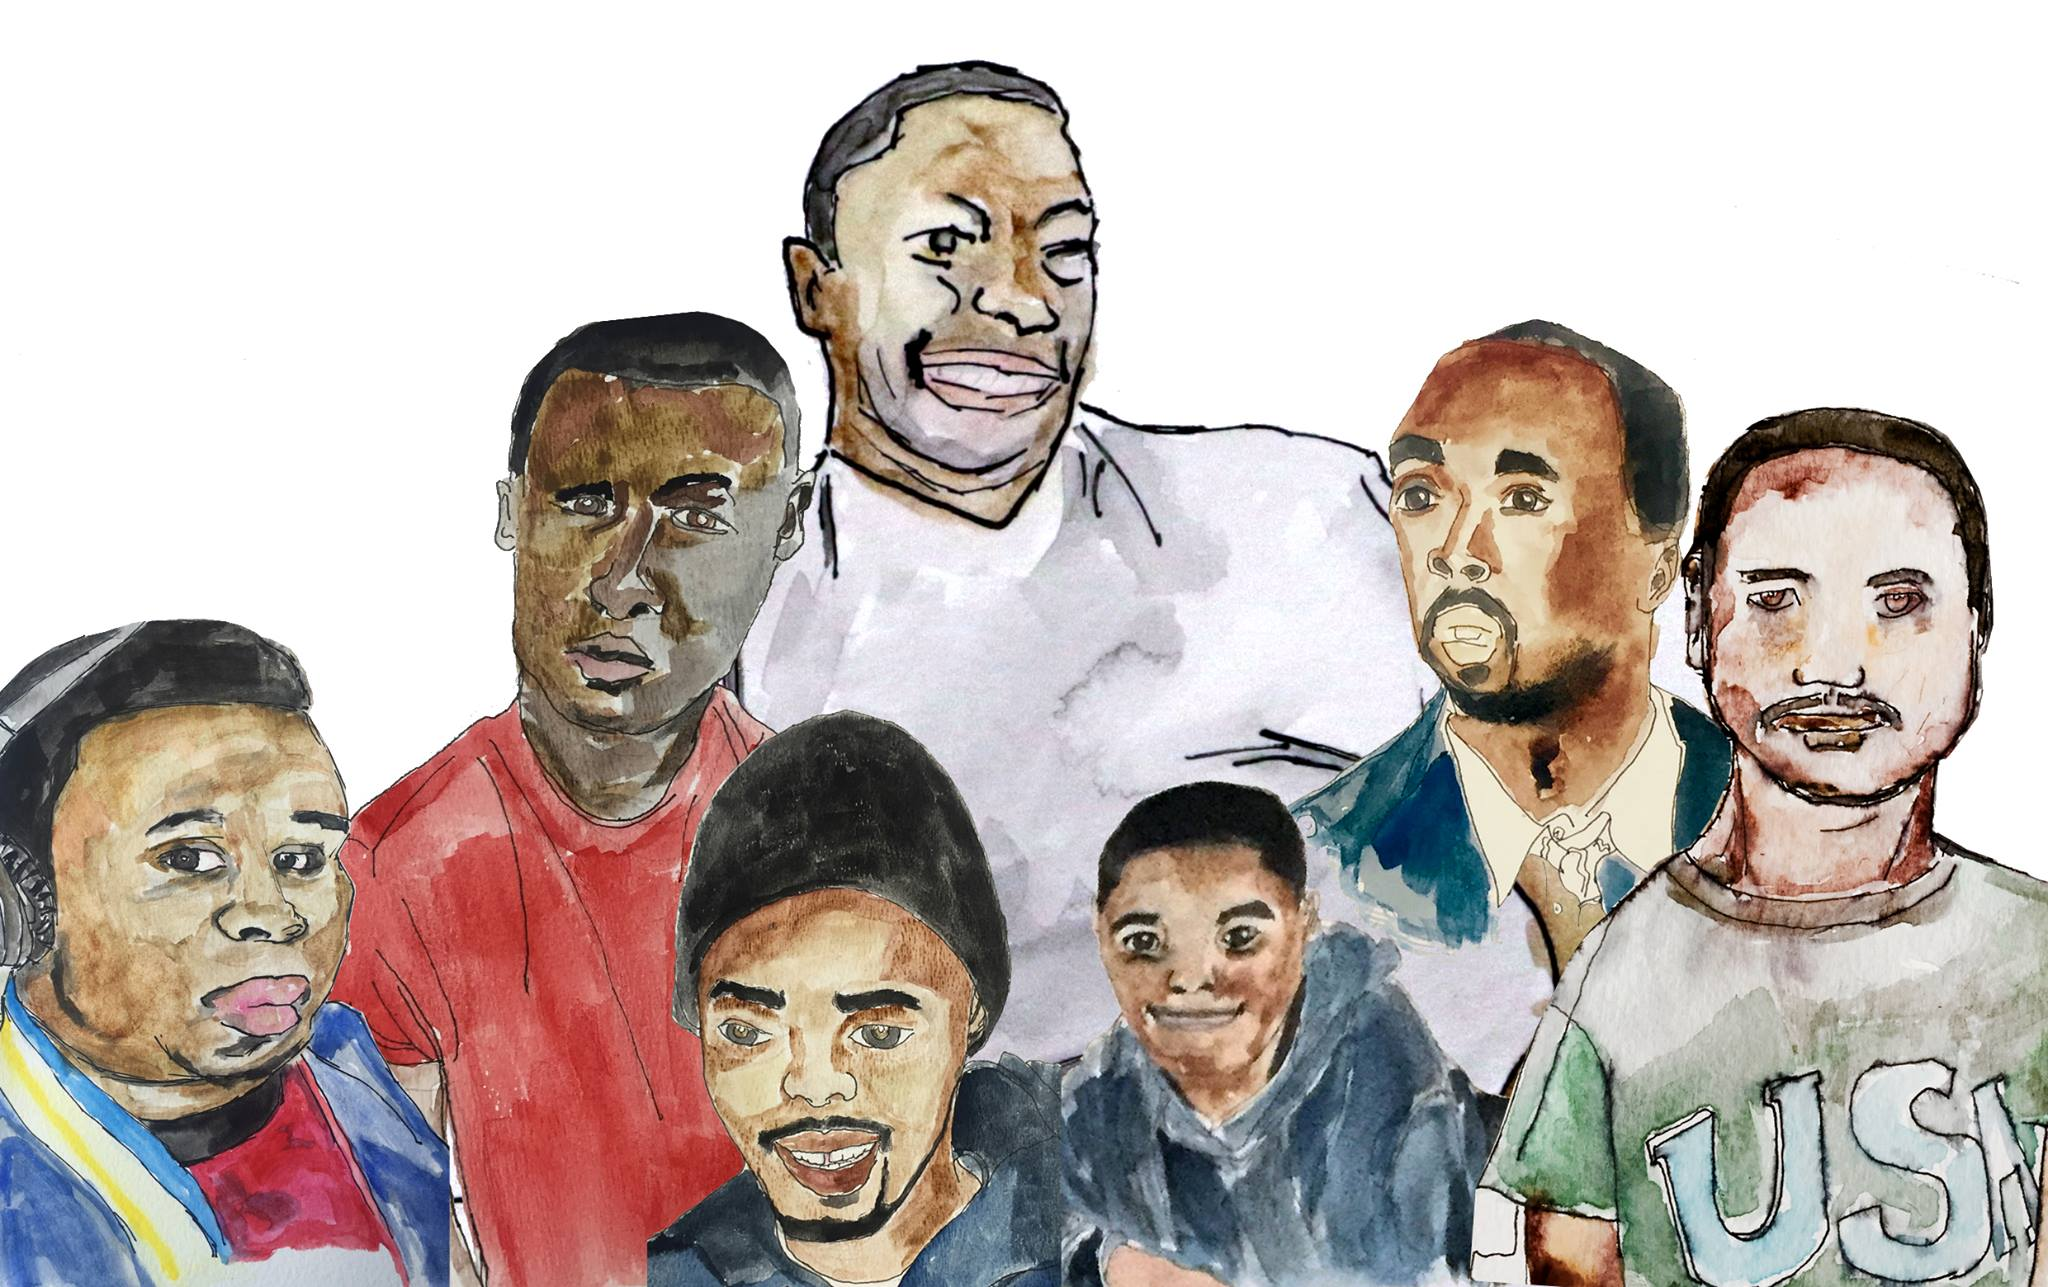 Christopher Blay's Composite of Brown, Gray, Grant, Garner, Rice, King, and Diallo.